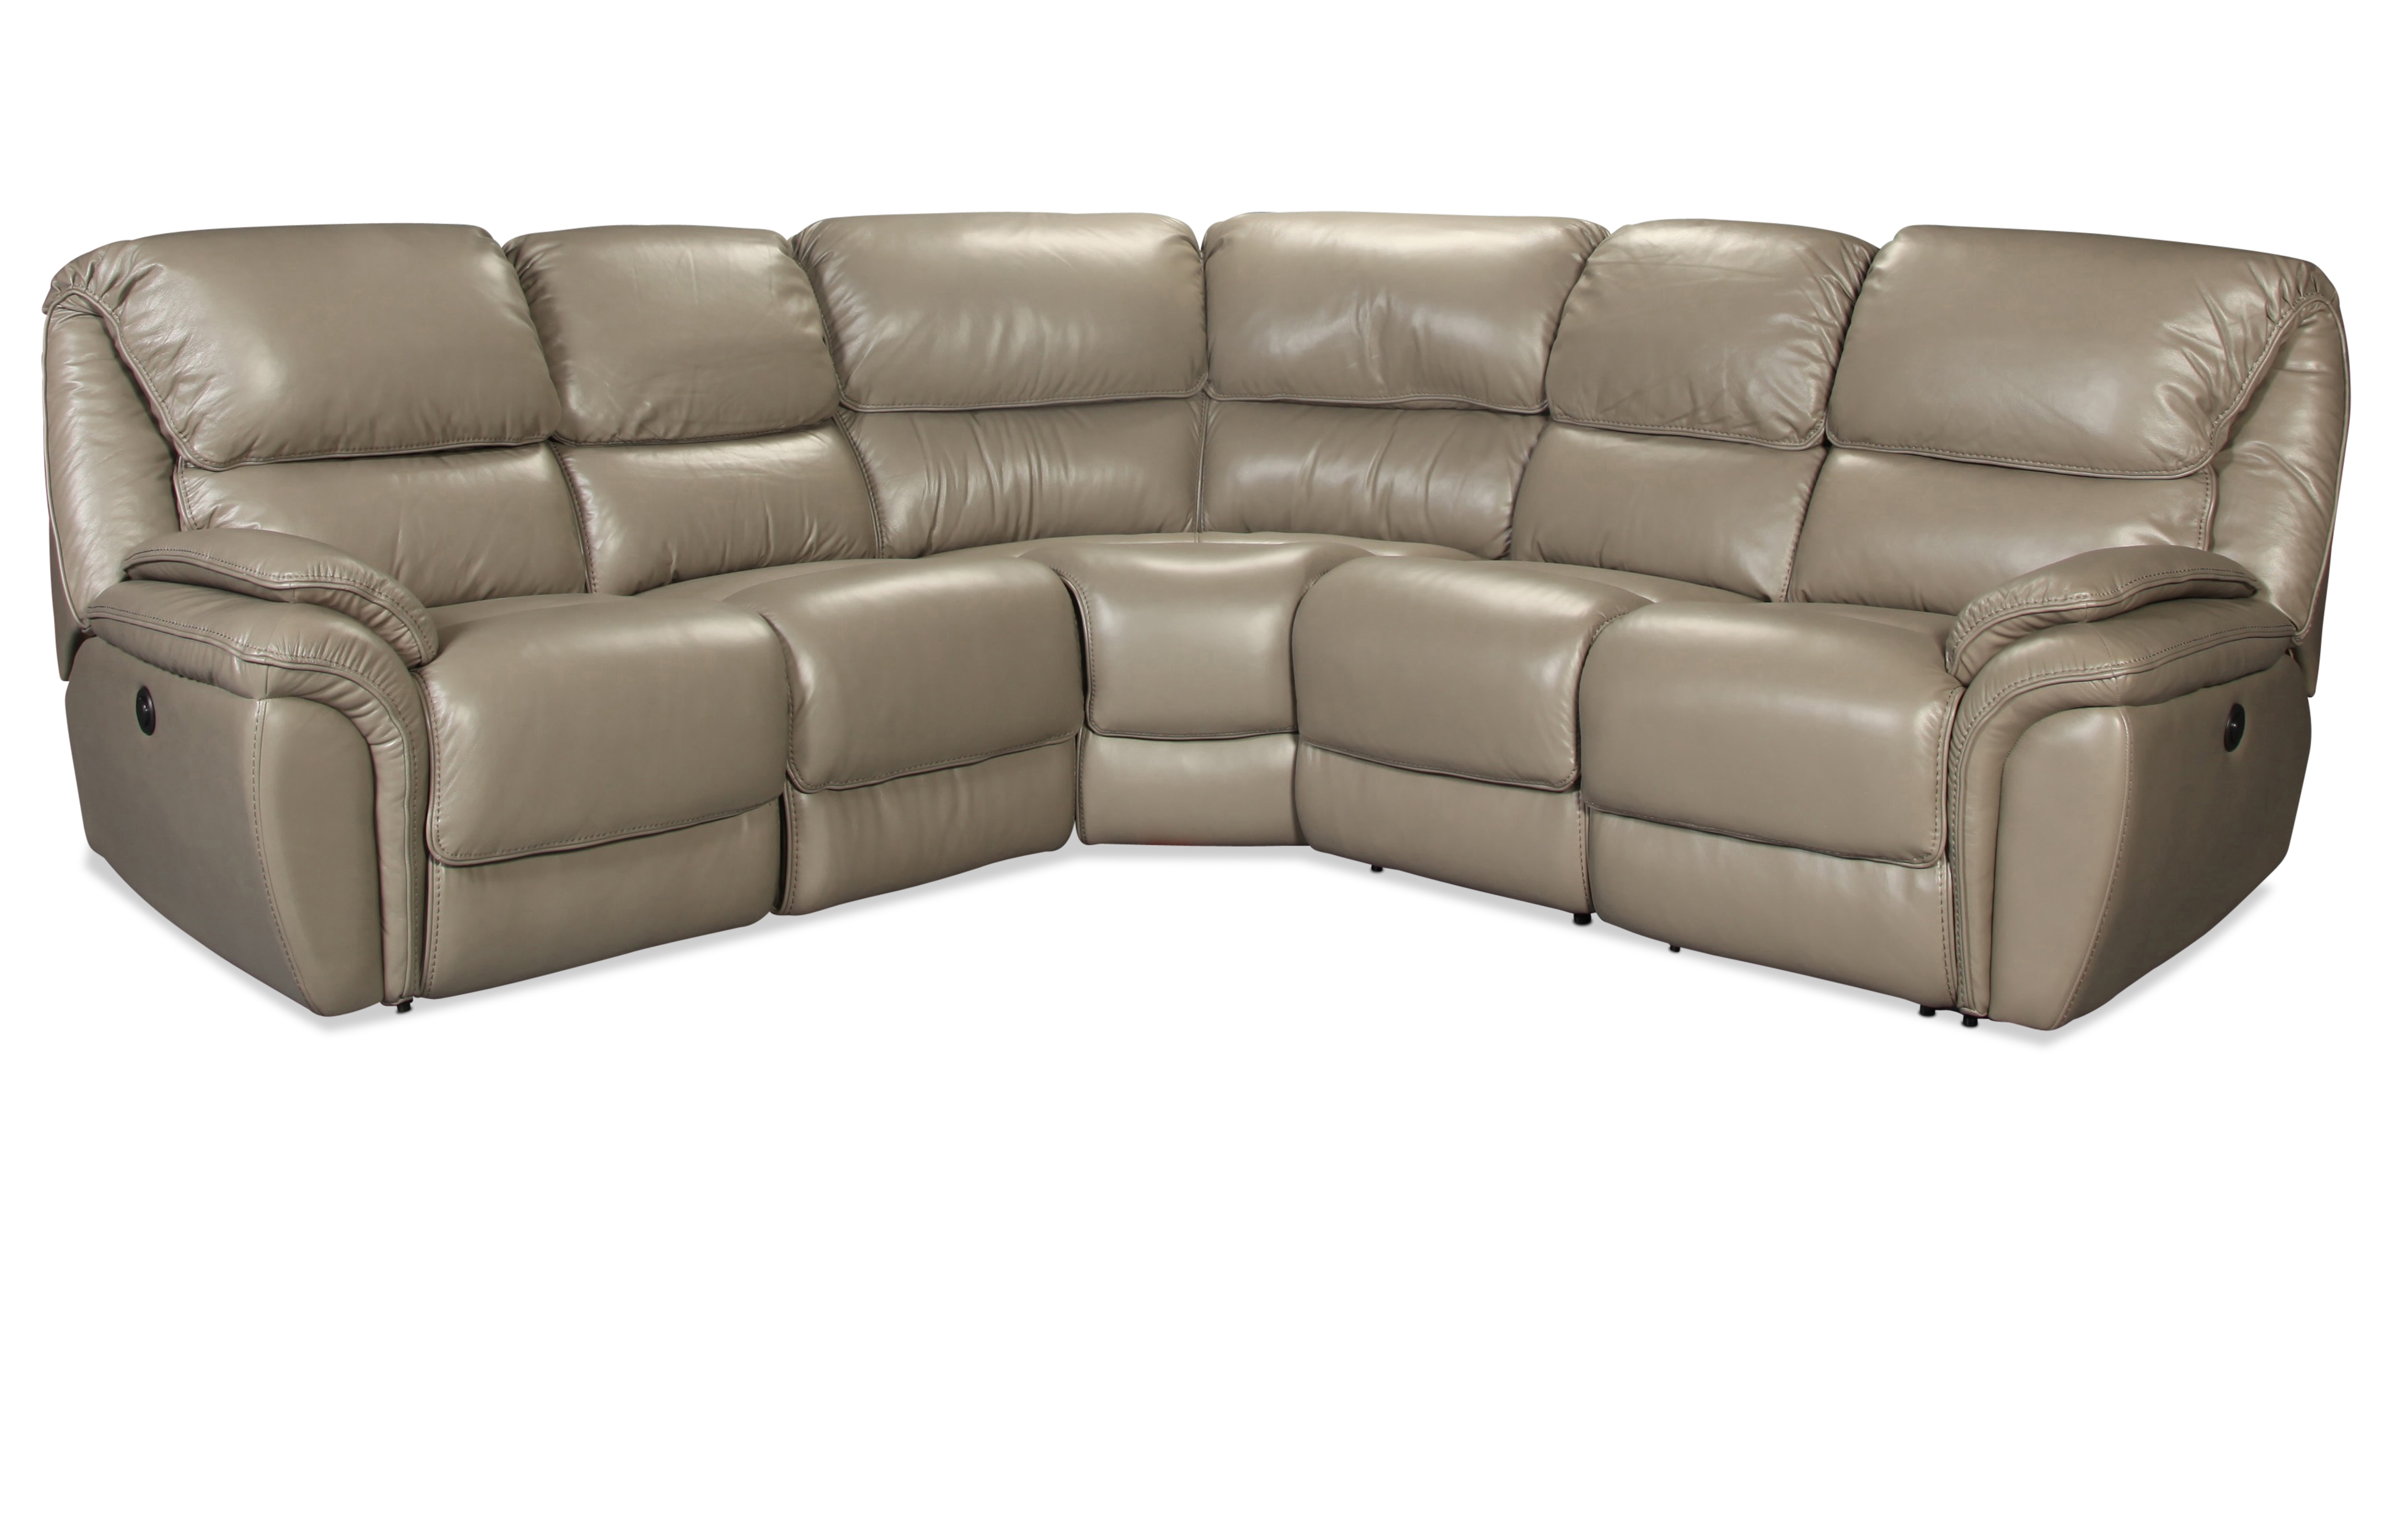 Living Room Furniture - Waterbury 5-Piece Power Reclining Sectional - Gray